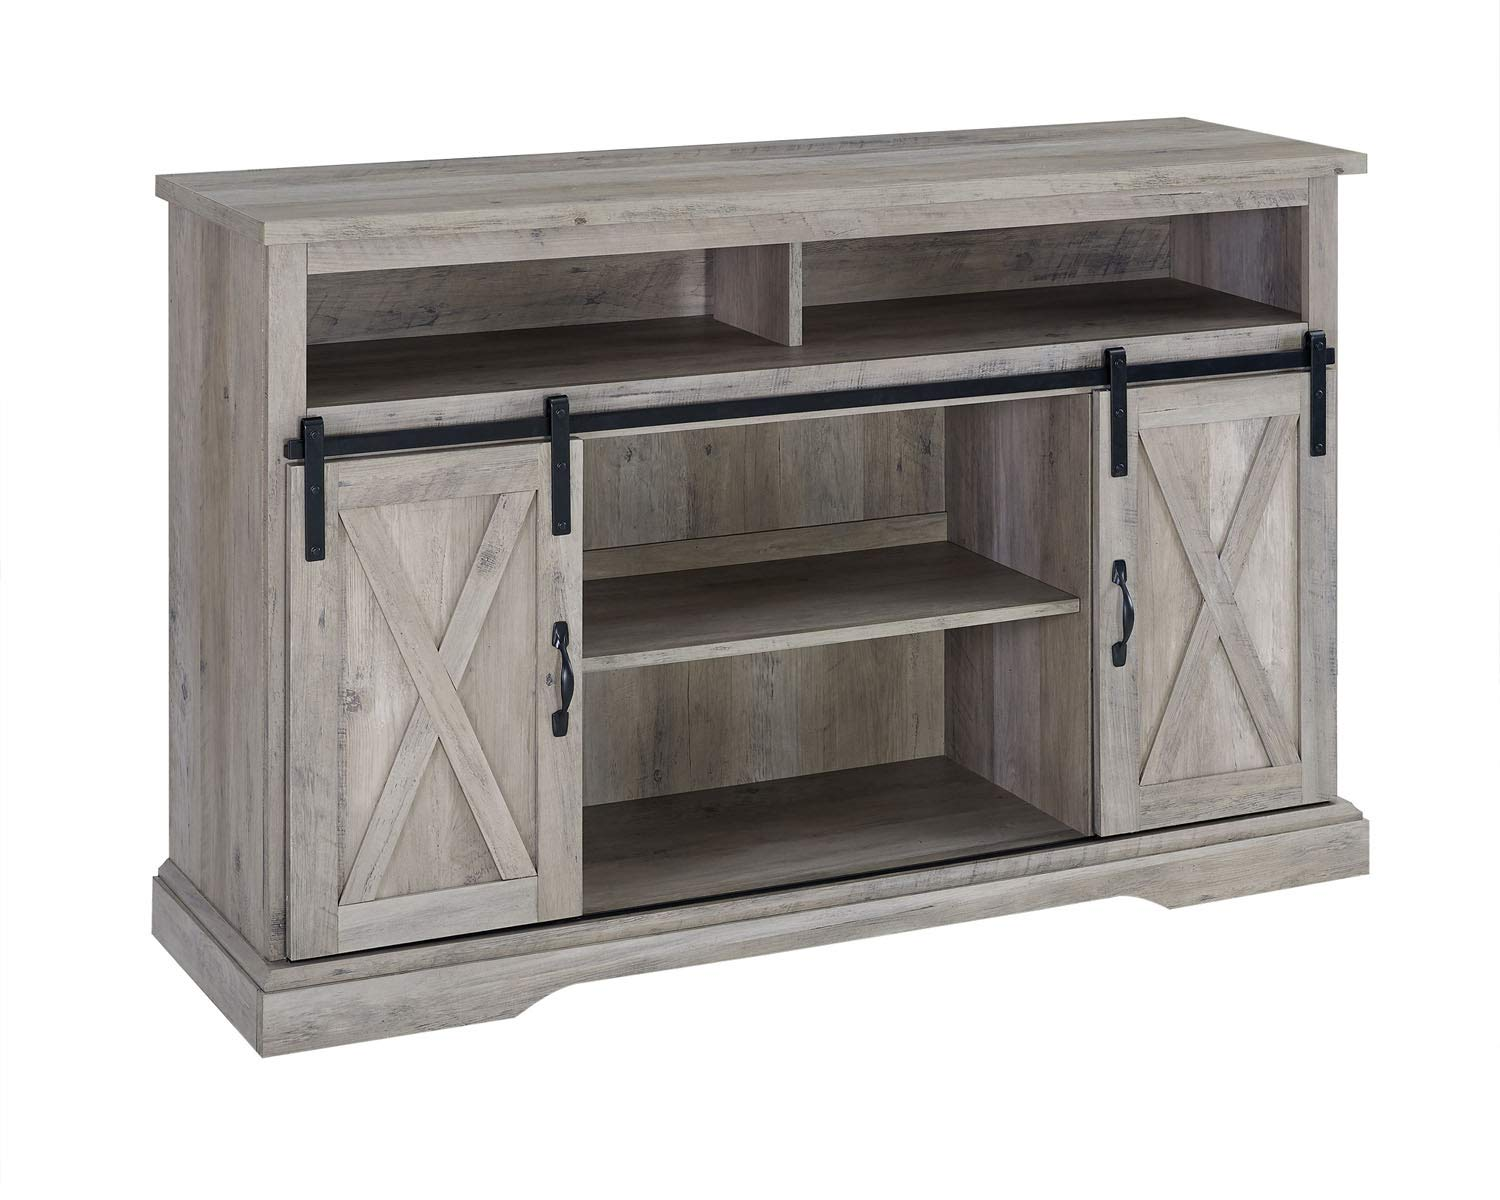 Walker Edison Furniture Company 52 Rustic Farmhouse Sliding Barn Door Highboy TV Stand – Grey Wash